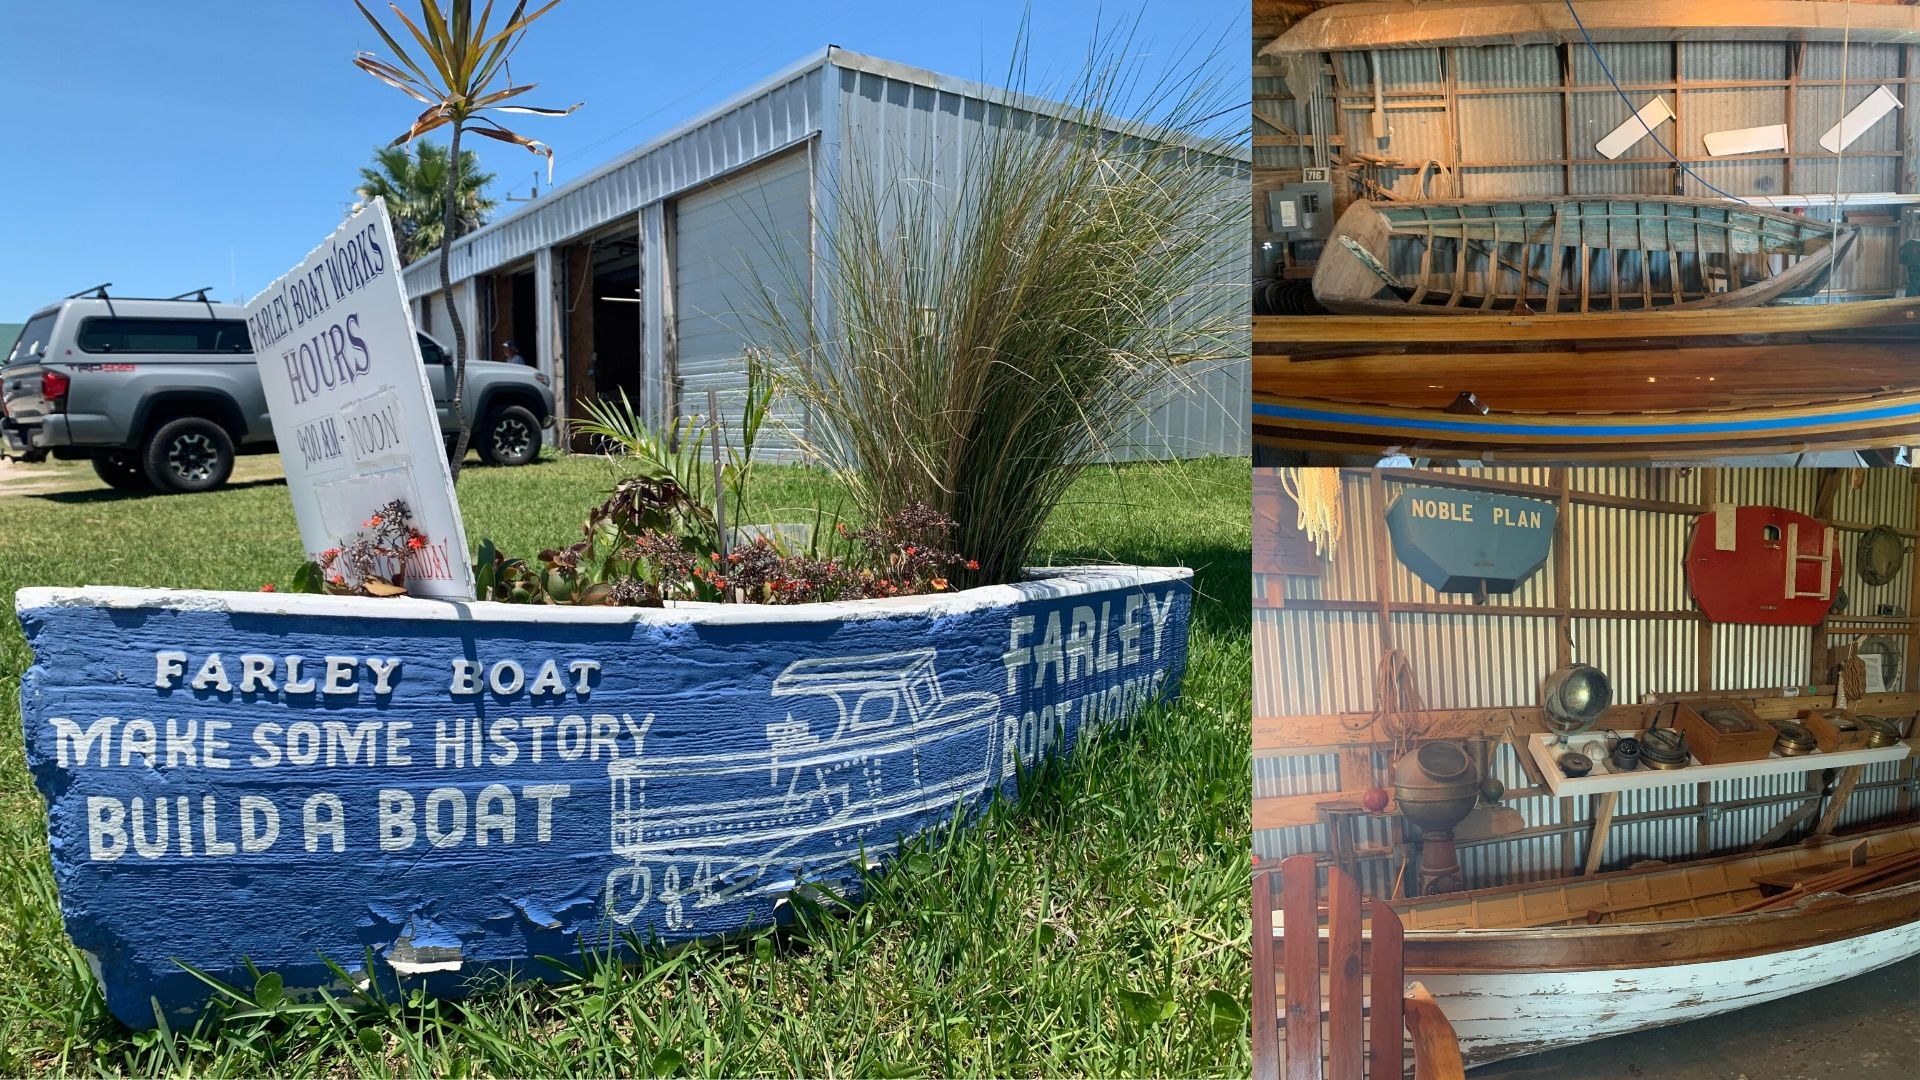 Photos from the Farley's Boat Works in Port Aransas and their Farley boat.